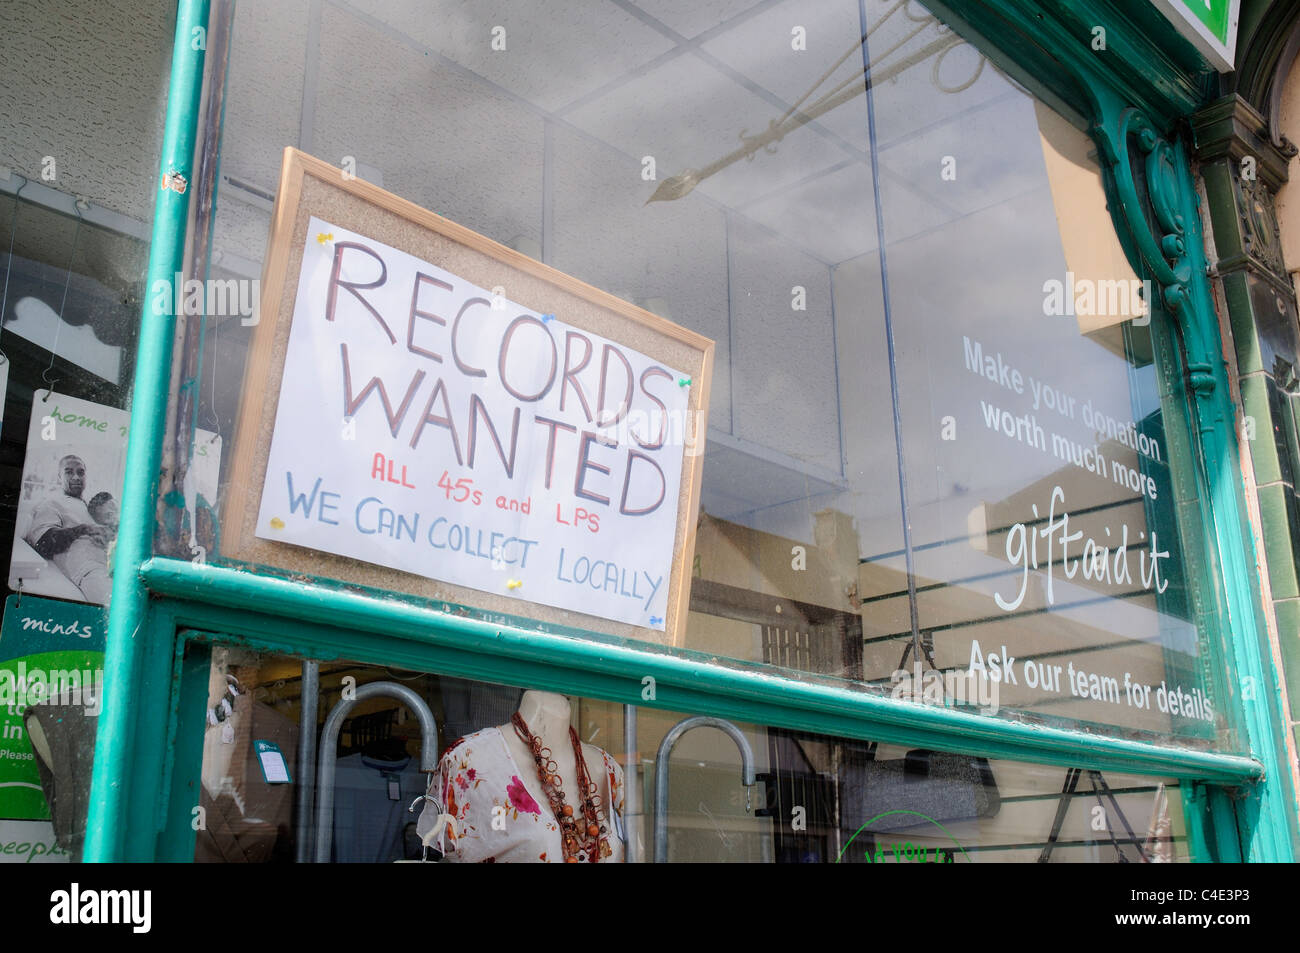 A sign 'Records Wanted' in a charity shop window - Stock Image